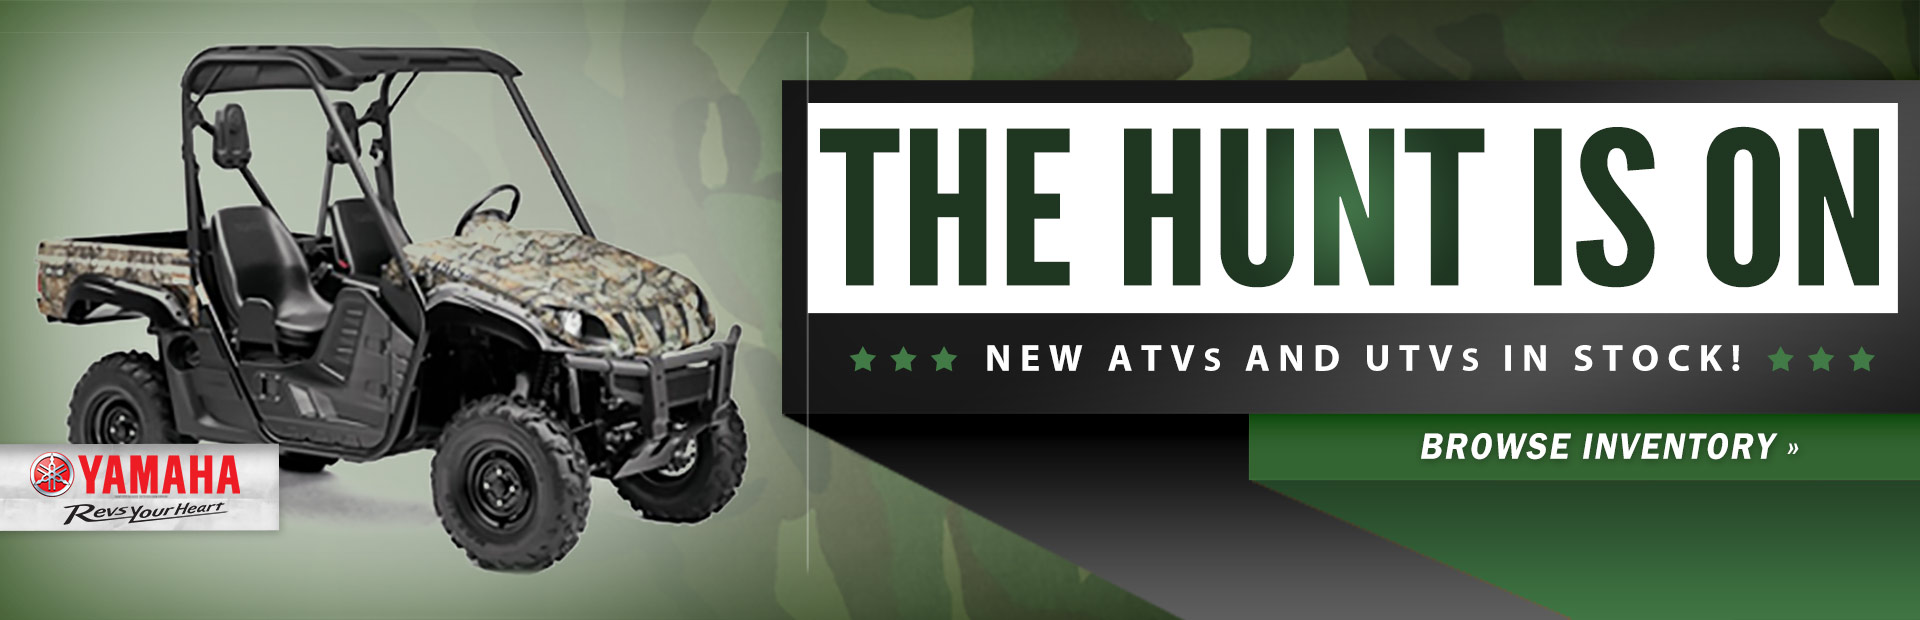 Click here to browse new ATVs and UTVs from Yamaha!